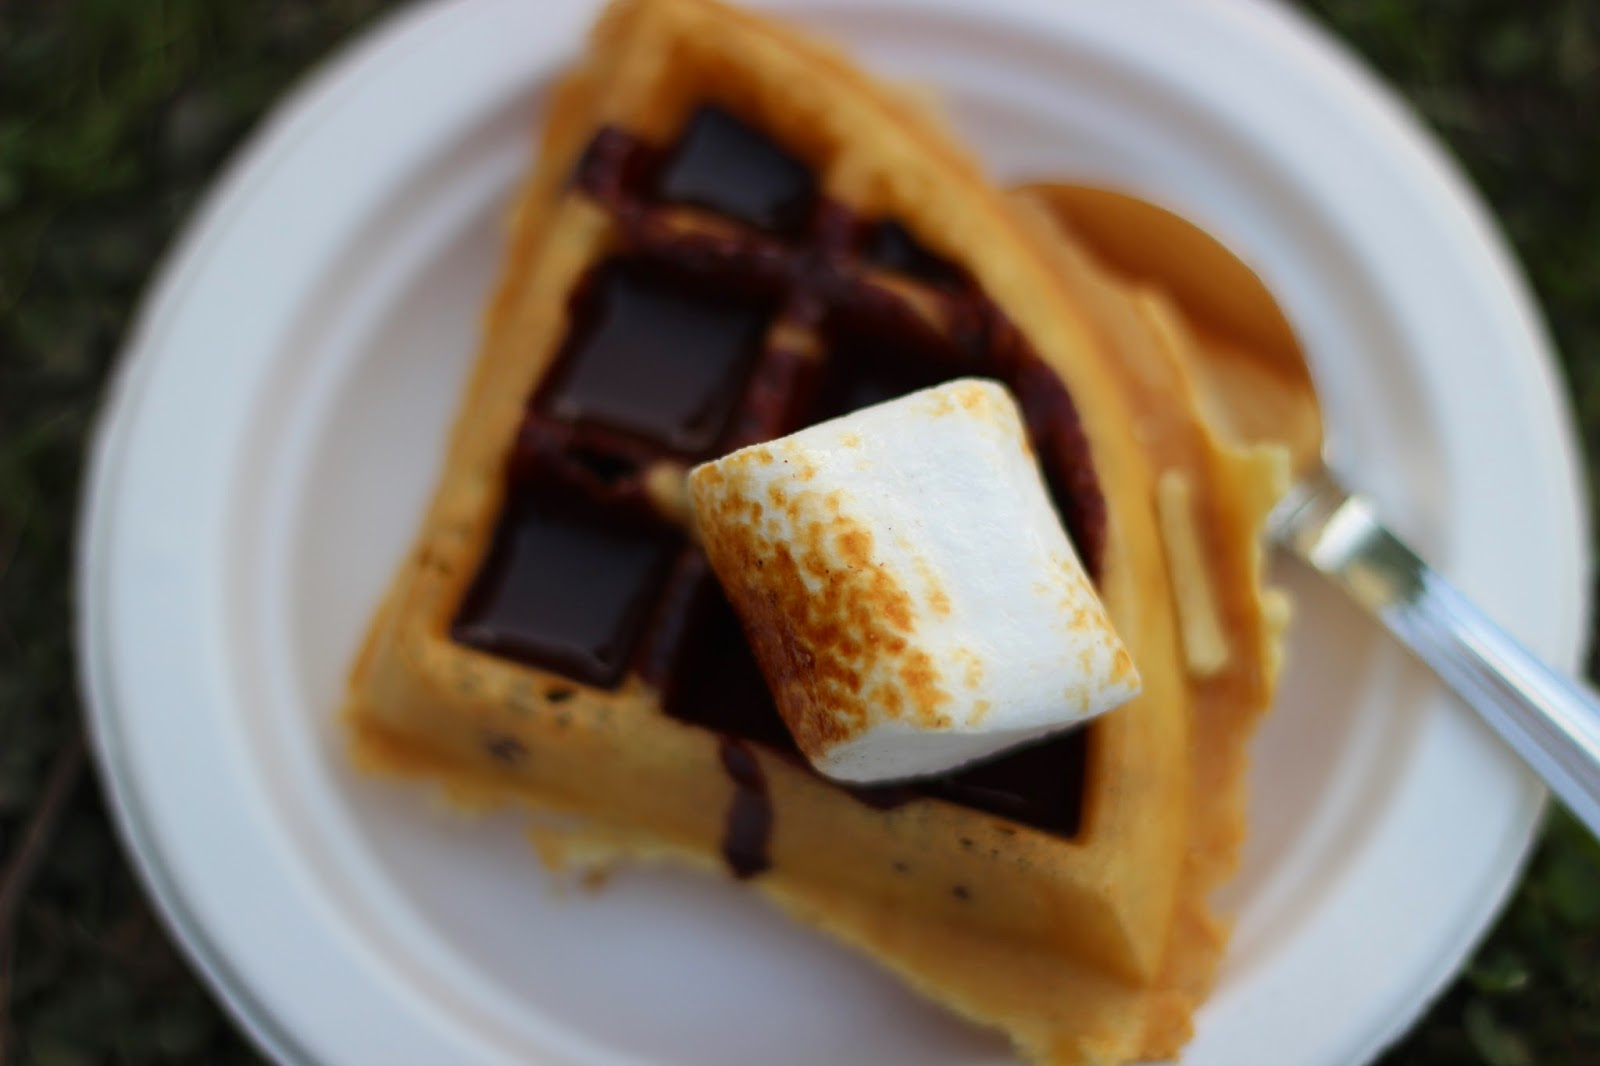 marsh mellows, Palate Fest 2014, food festival, waffles, drool